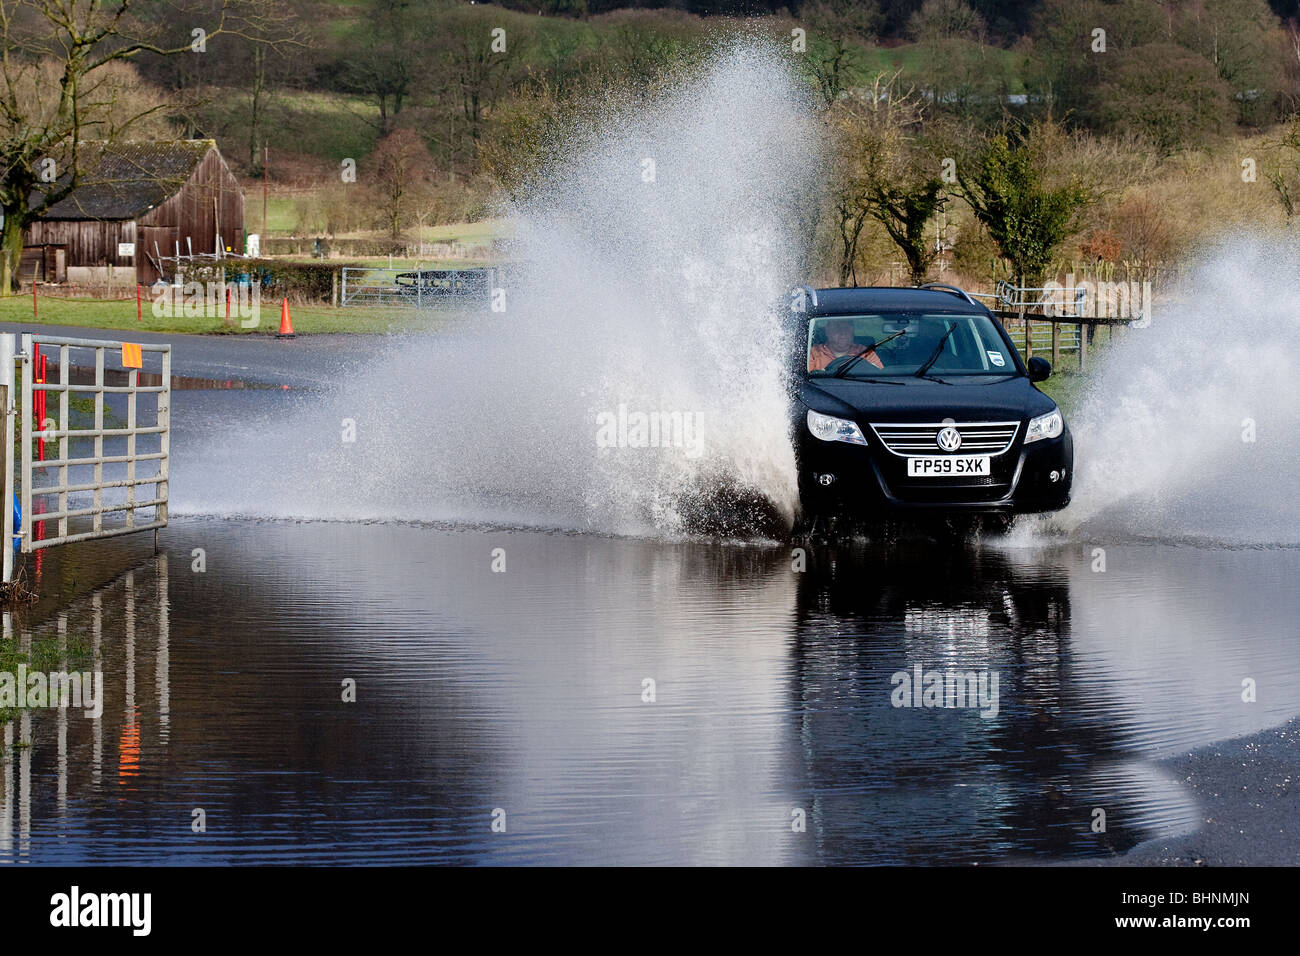 VW Motor Vehicle travelling at speed through flooded grounds in Derbyshire near Bakewell - Stock Image